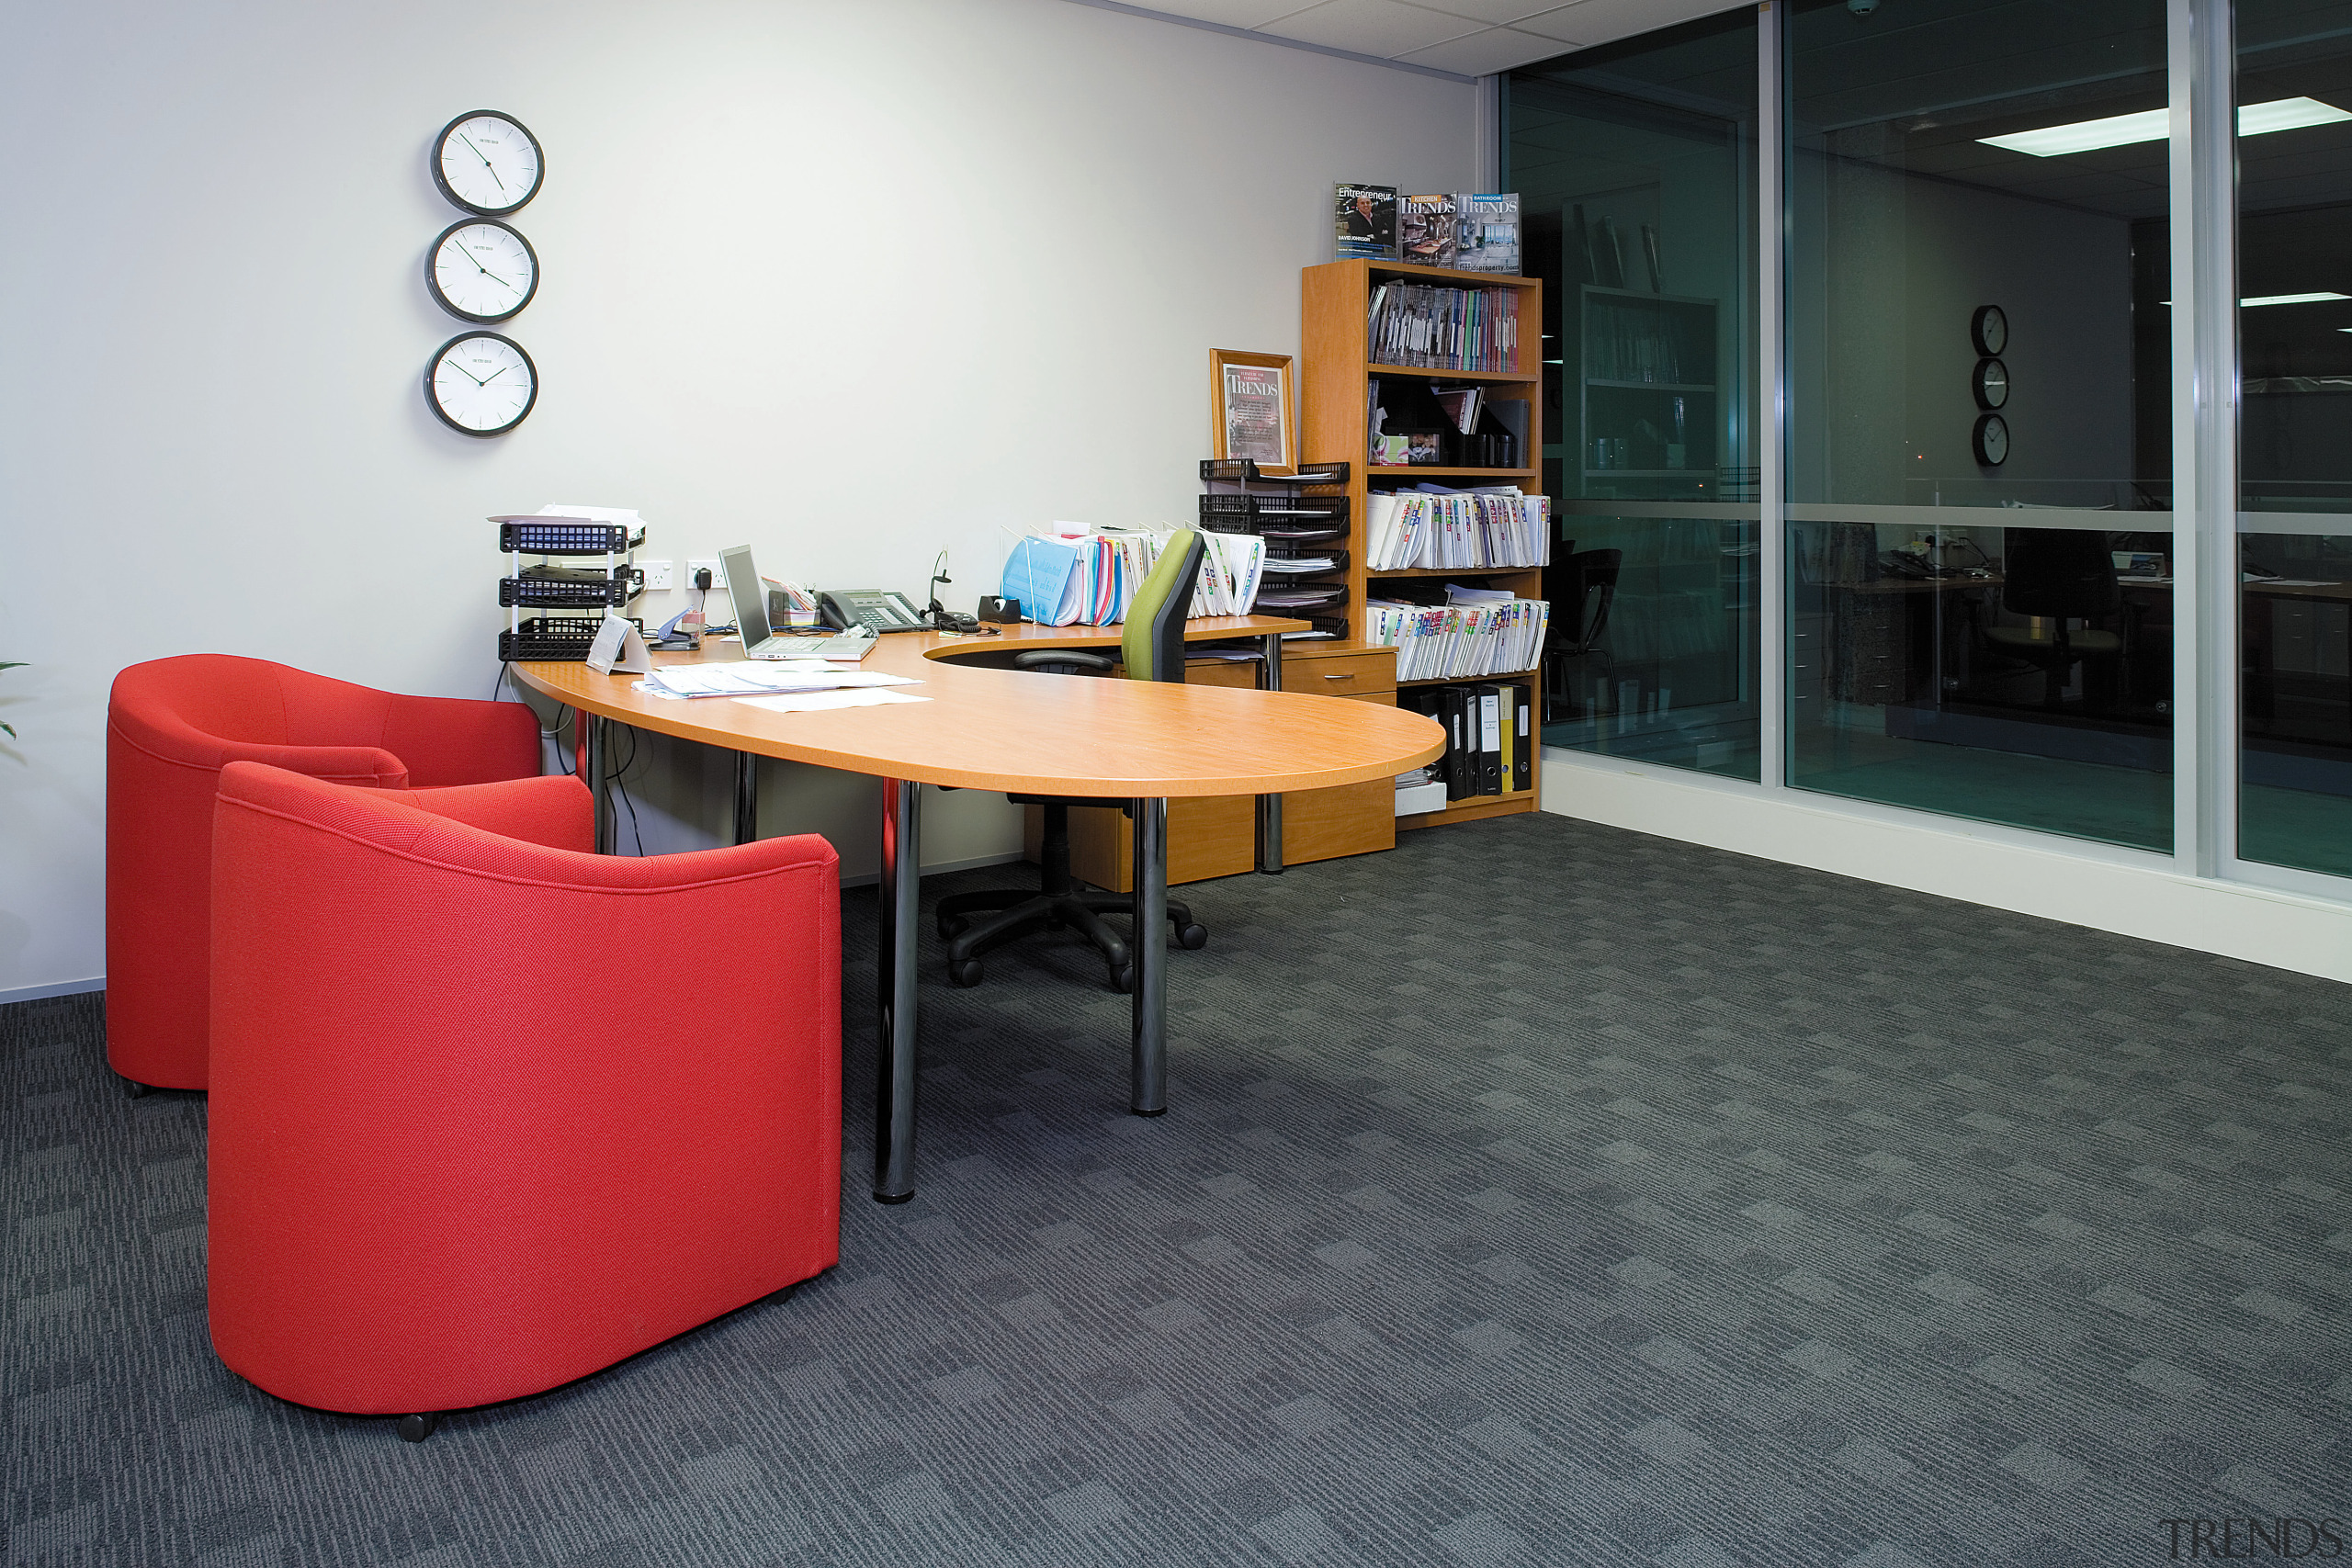 A view of the office furnishings. - A chair, desk, floor, flooring, furniture, interior design, office, product design, table, black, gray